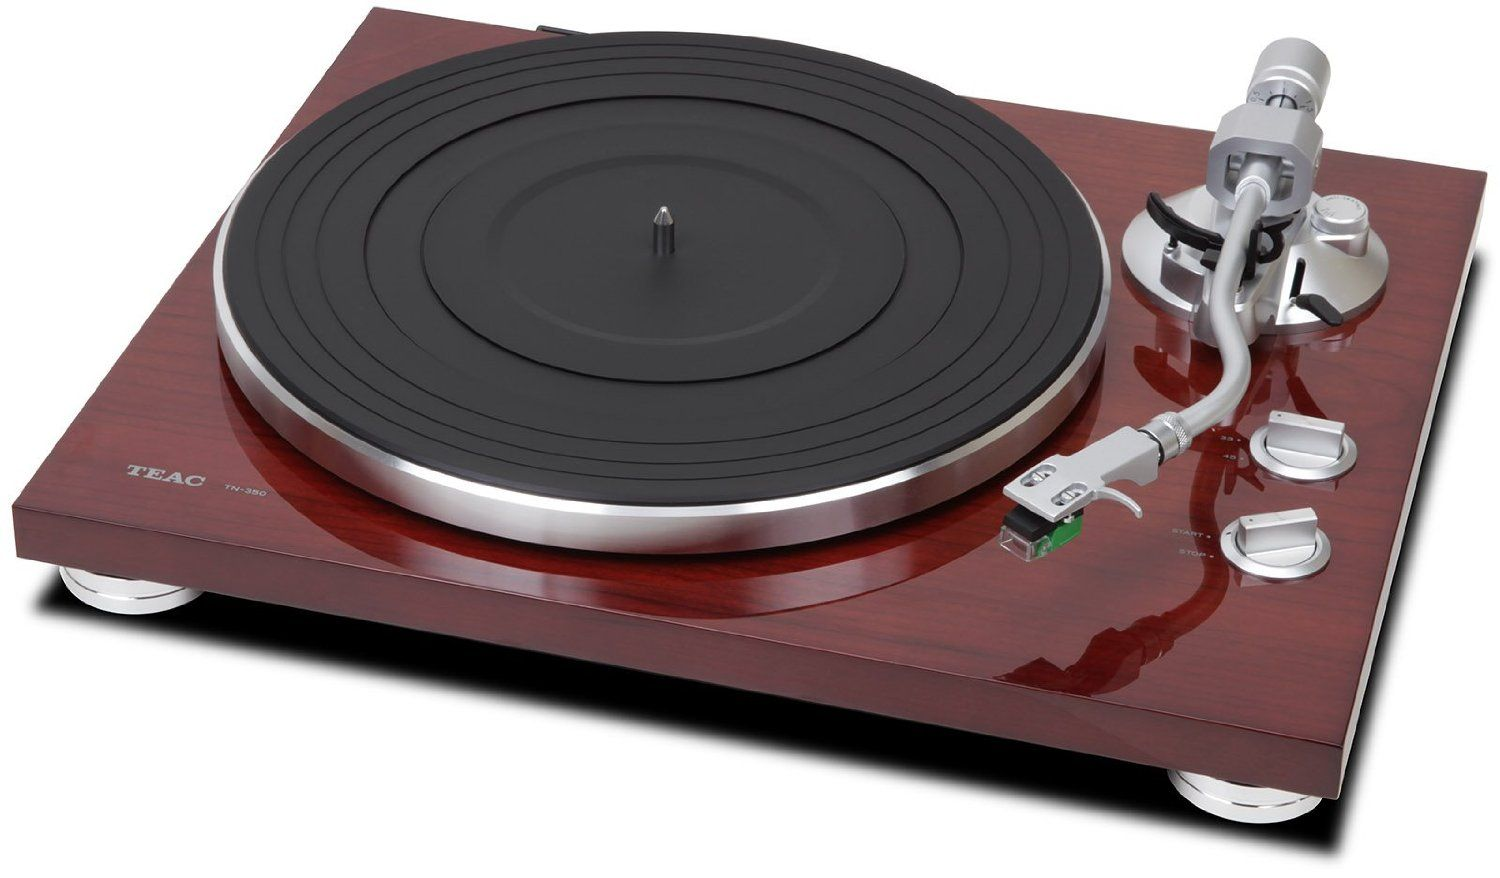 Teac Tn 350 With Cherry Finish Also Available In Black